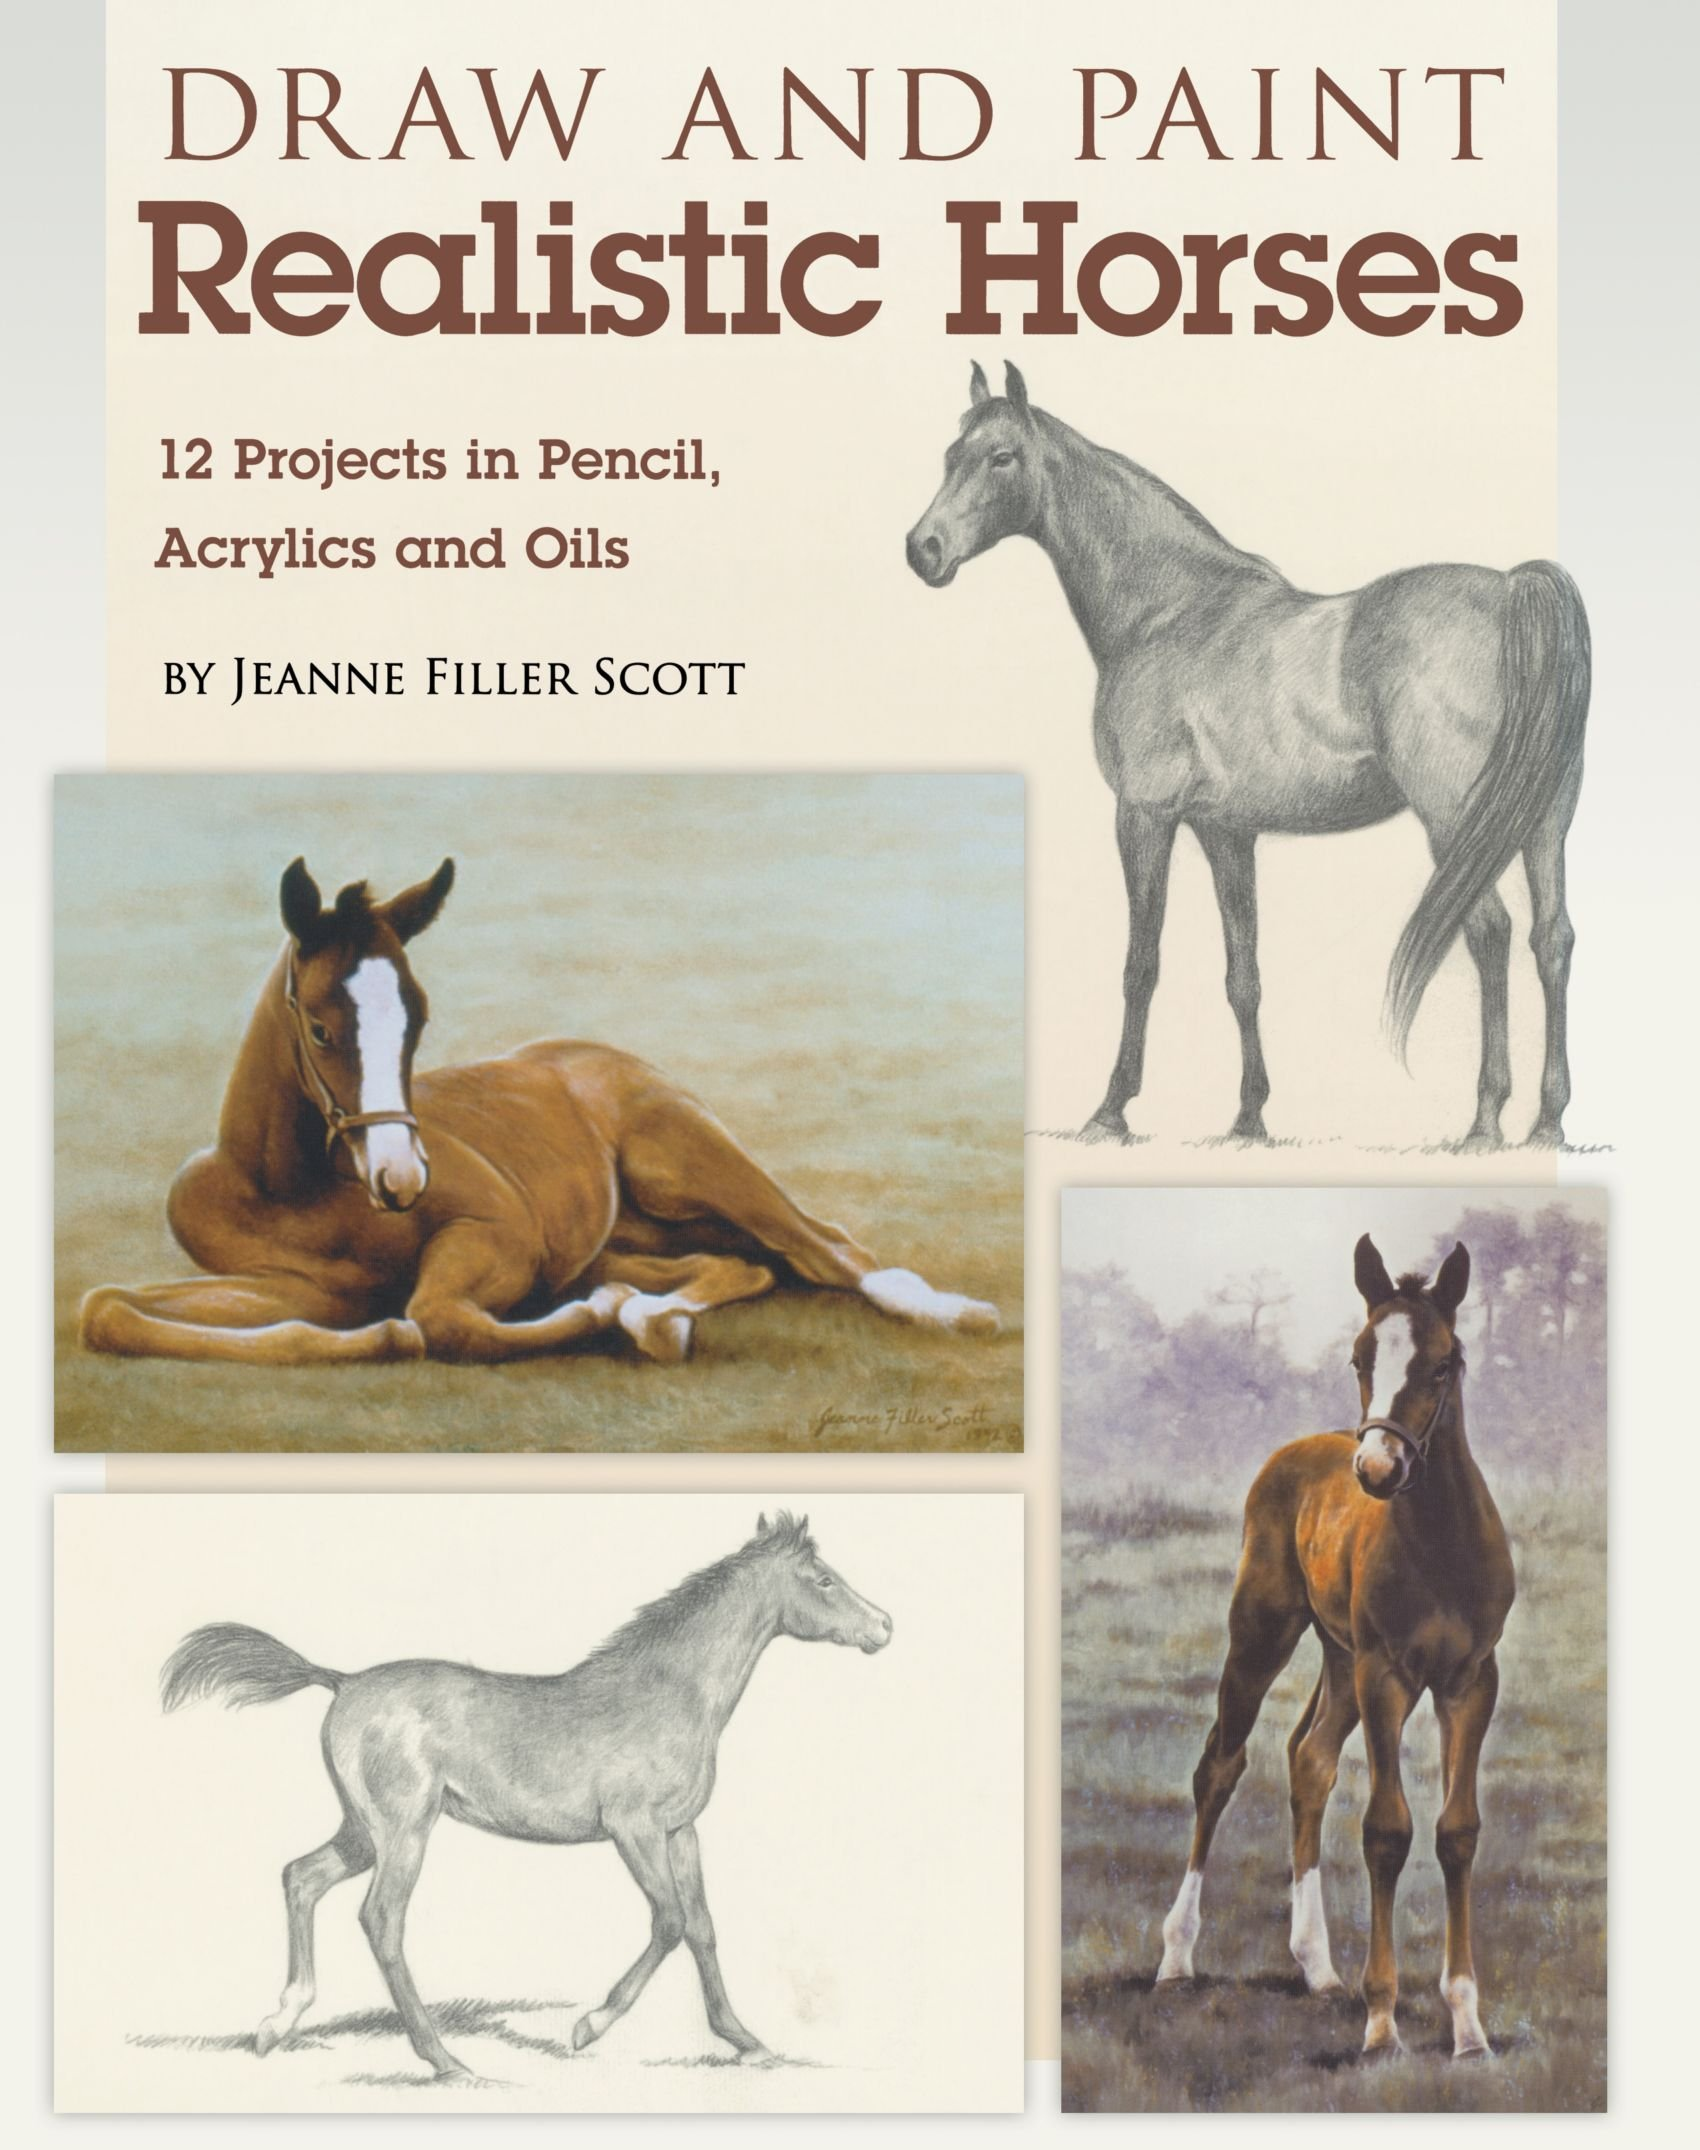 Draw And Paint Realistic Horses: Projects In Pencil, Acrylics And Oills:  Jeanne Filler Scott: 9781600619960: Amazon: Books